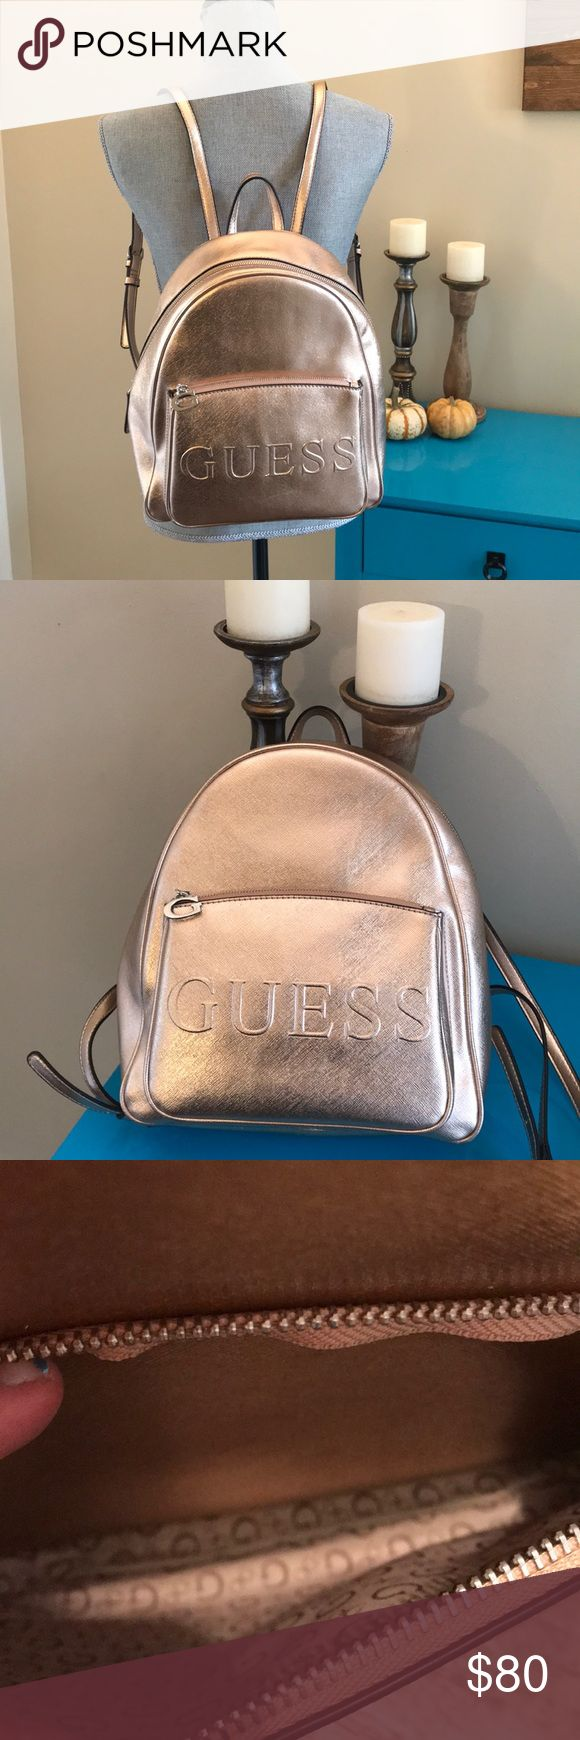 FINAL PRICE! GUESS! Rosegold backpack!! Gently used rose gold backpack!!! Has front pocket and tons of room inside!!! Has two adjustable straps on back!! Minor marks on bottom of bag! Not noticeable as they are on bottom parts of bag! ( see last few pics for marks) Guess Bags Backpacks